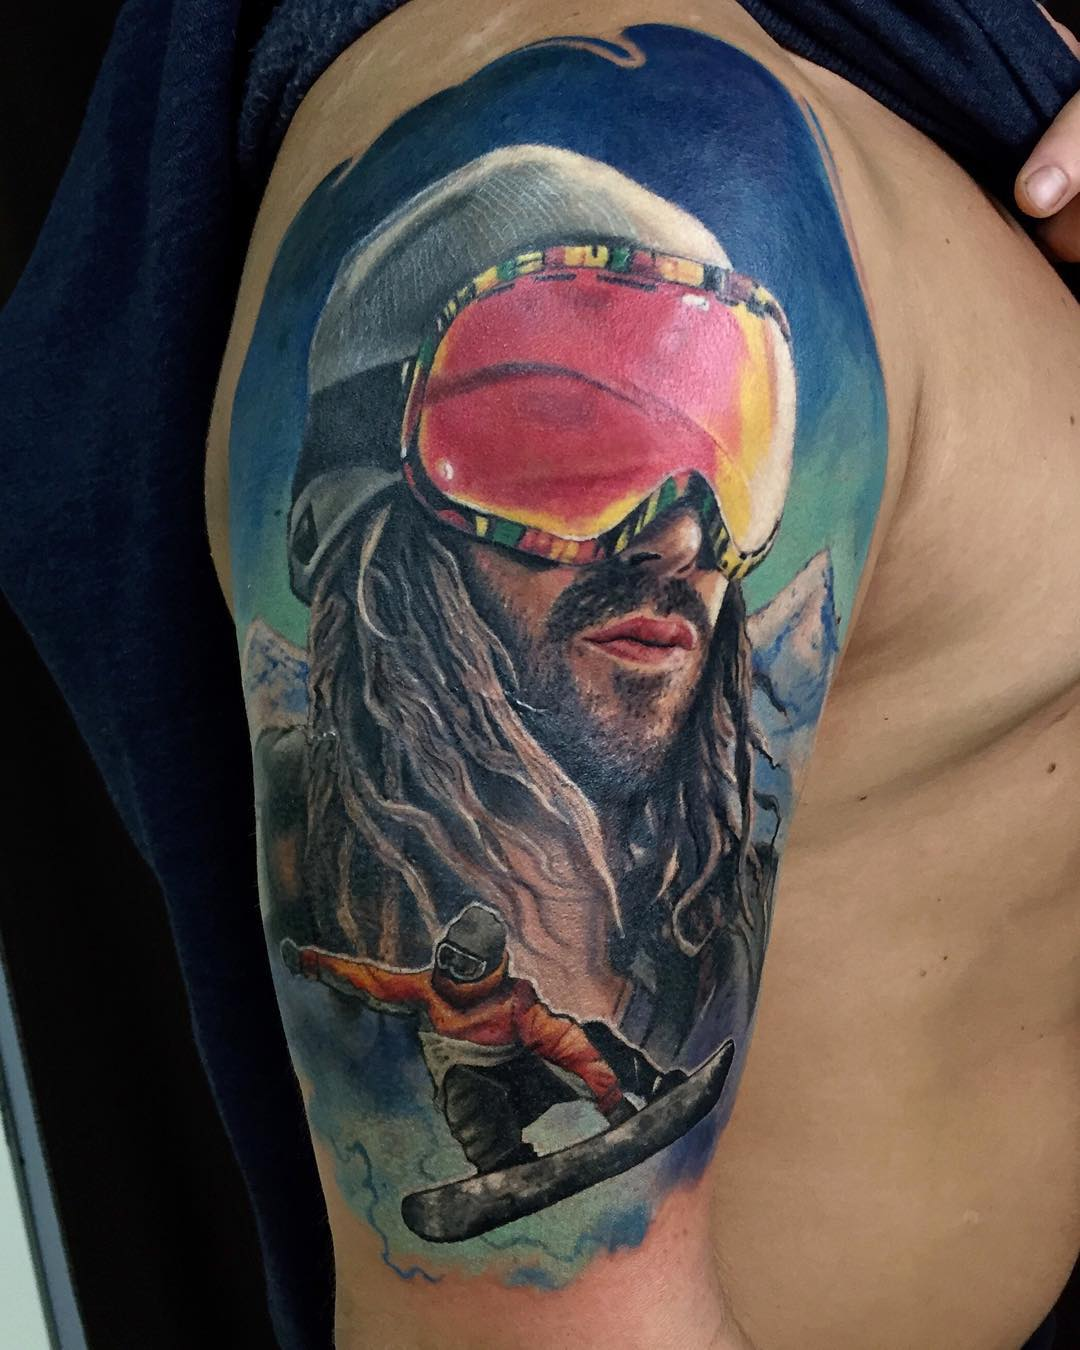 Snowboarder Tattoo on Shoulder